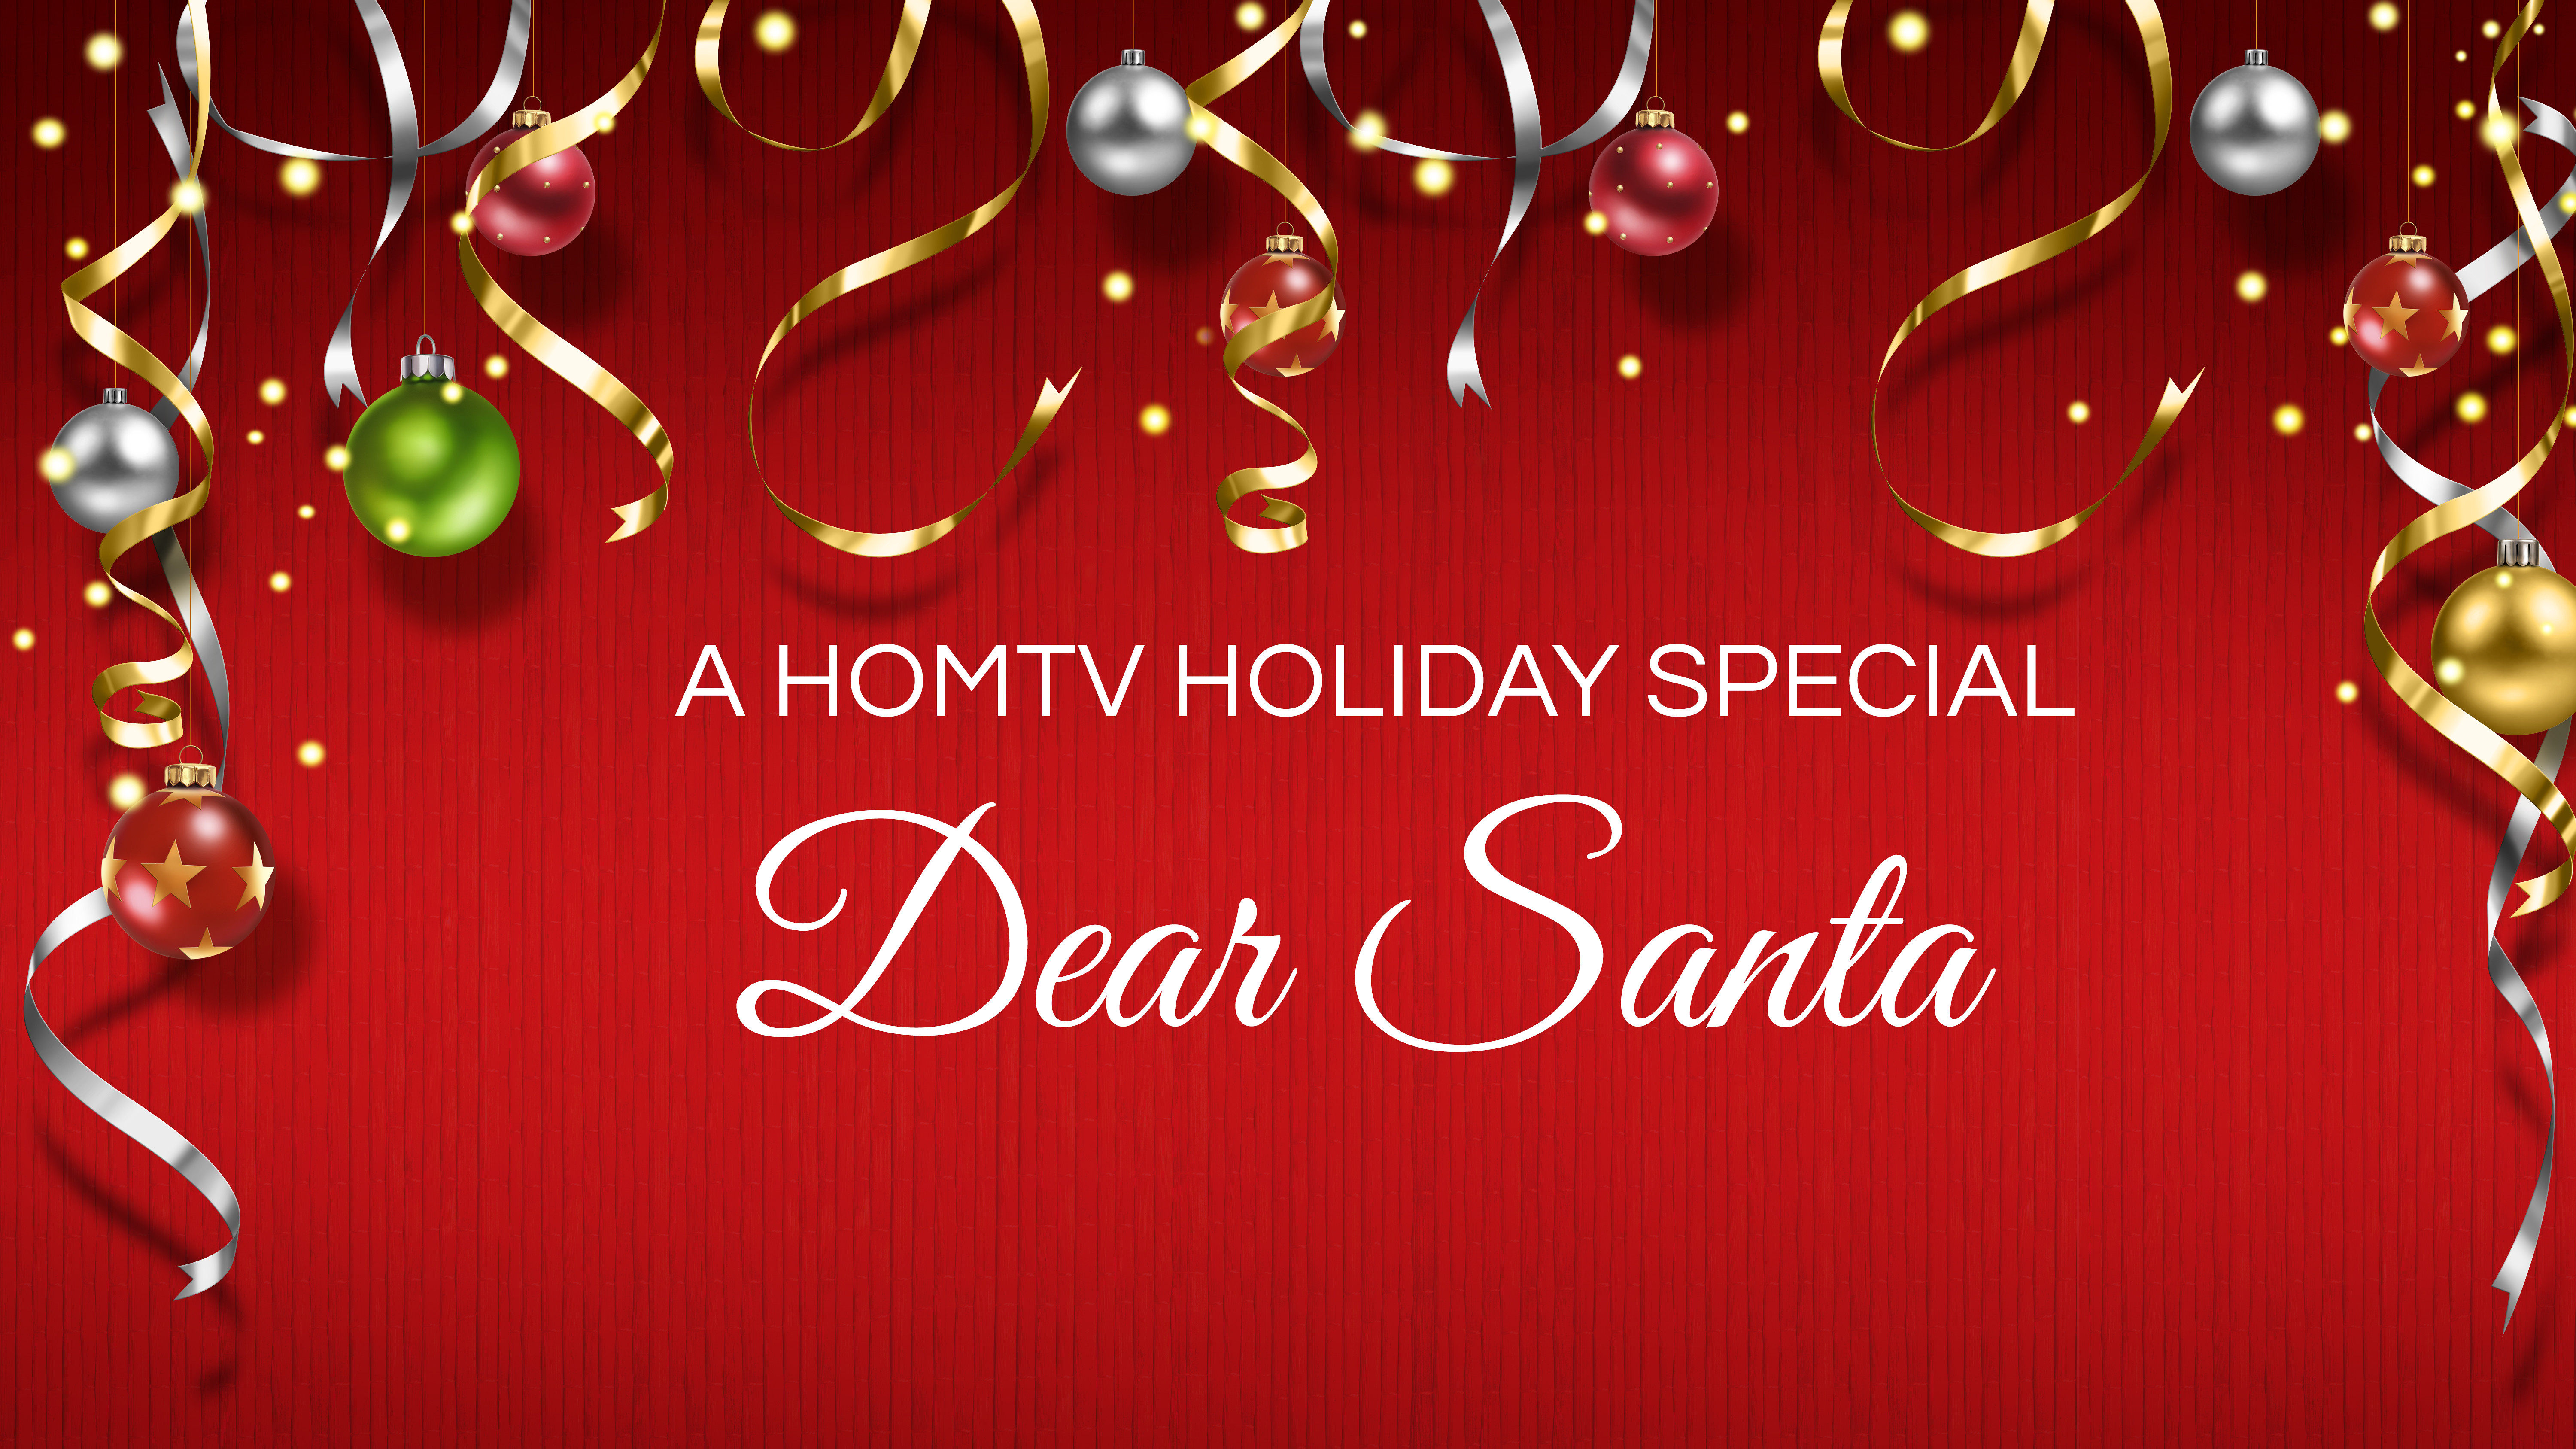 Dear Santa - A HOMTV Holiday Special